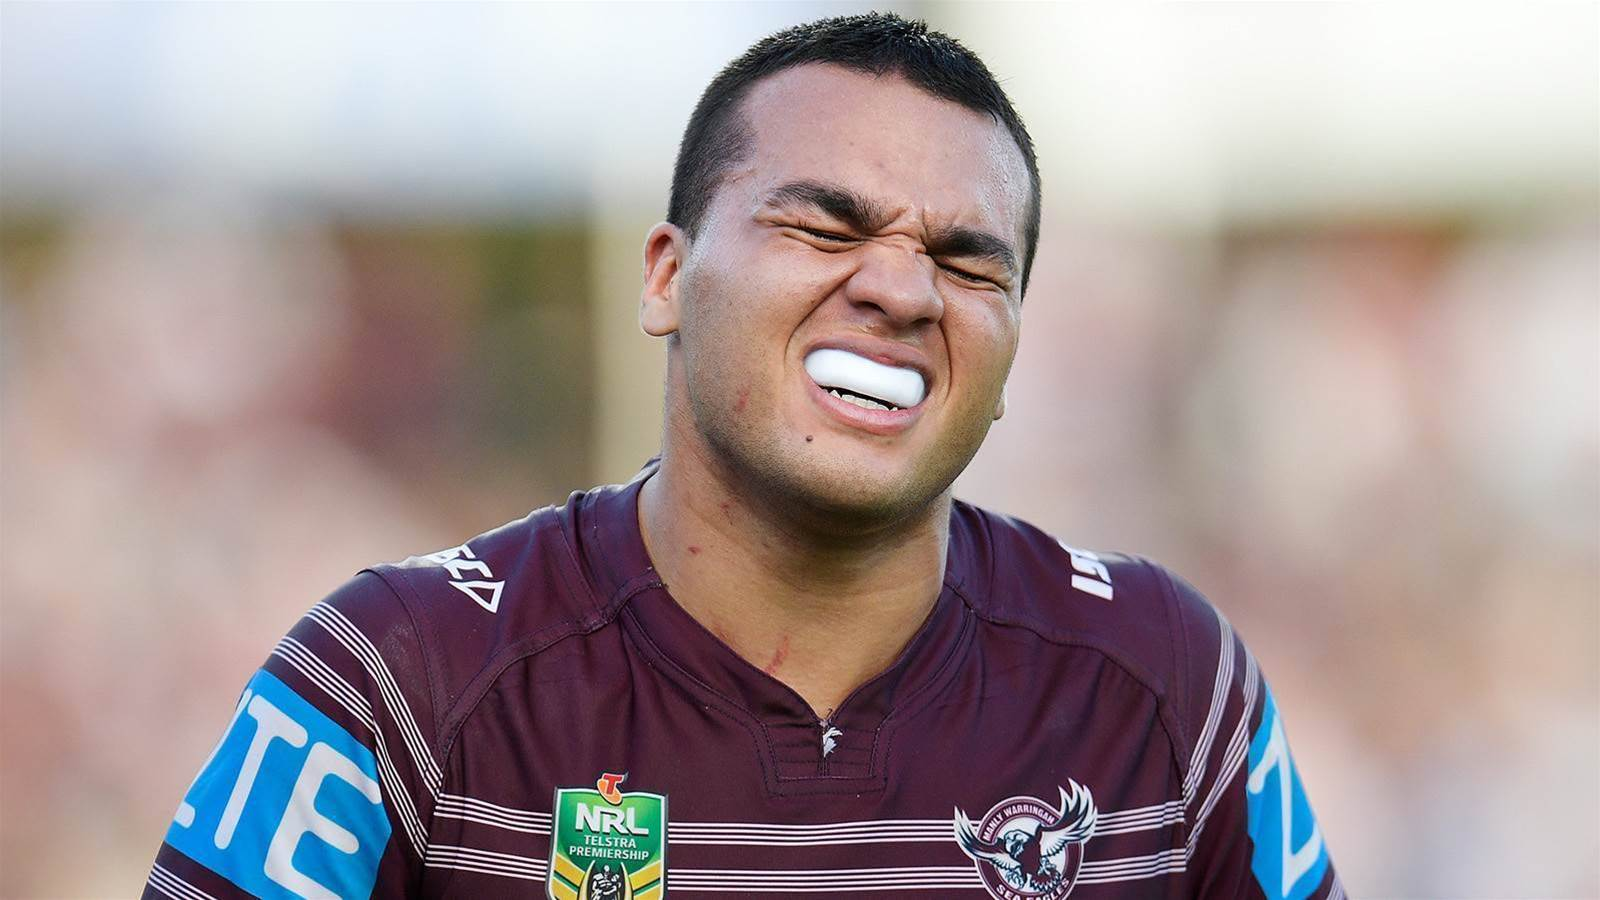 NRL prop: I almost died